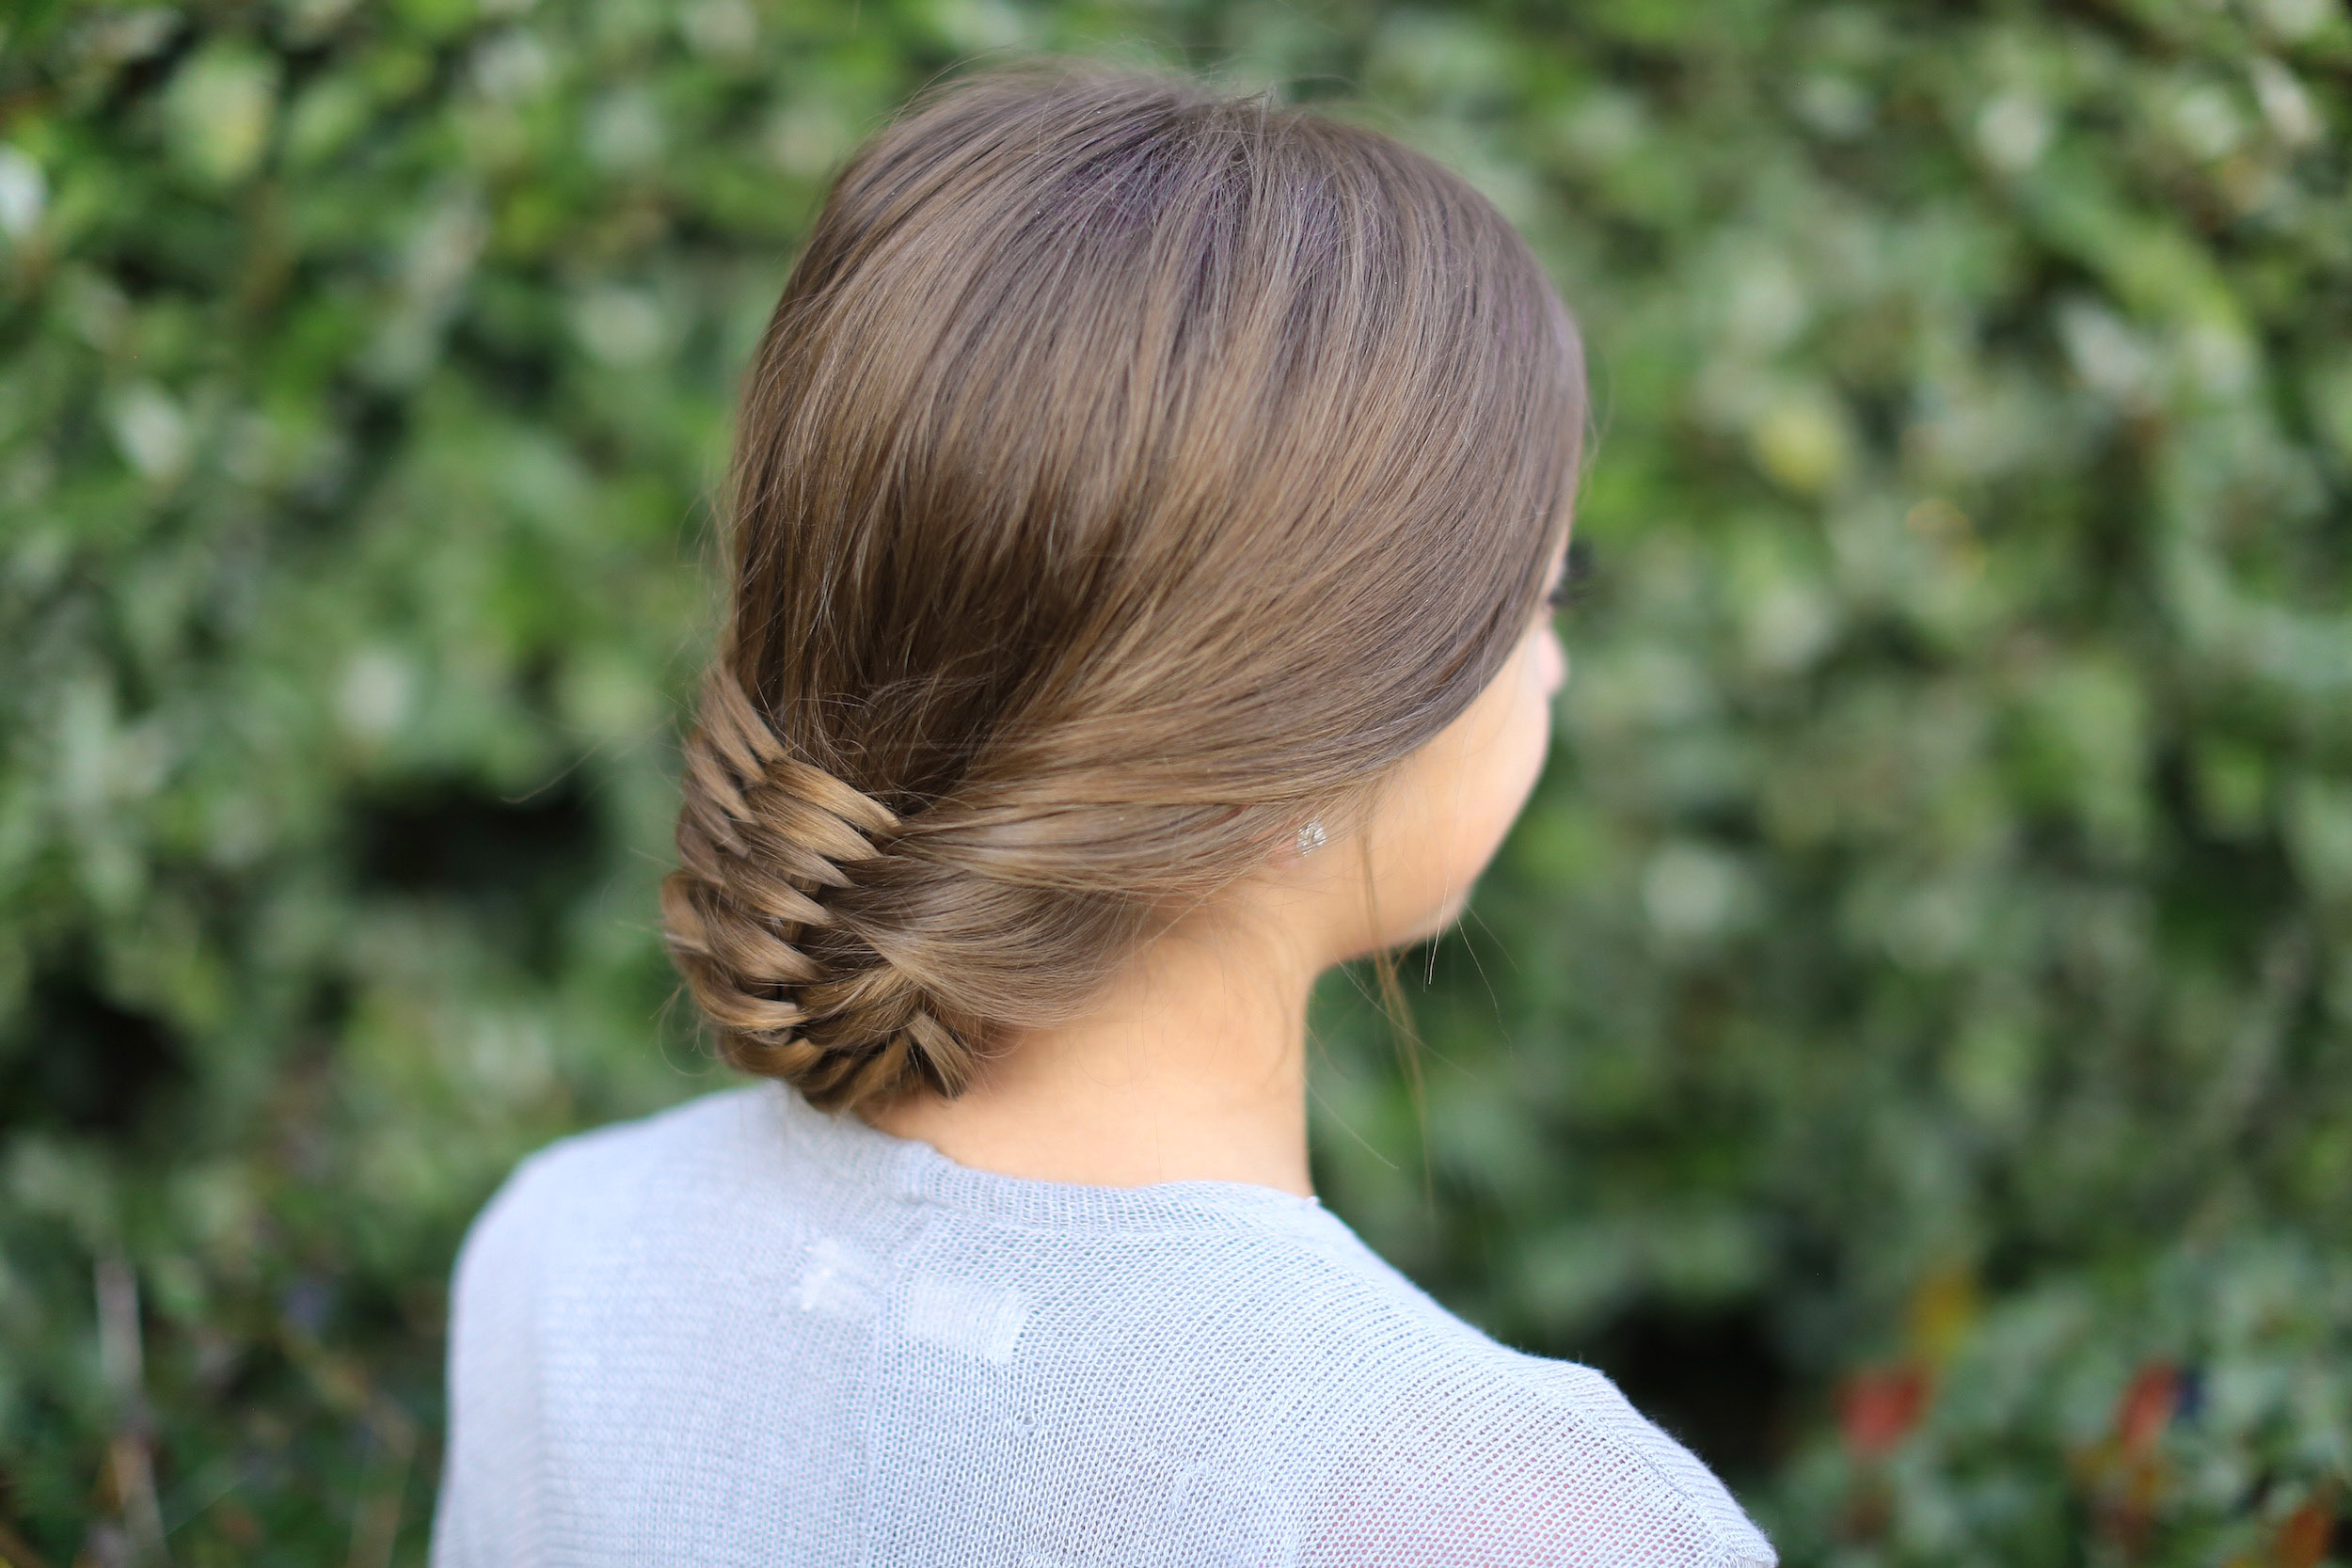 The Woven Updo Cute Girls Hairstyles